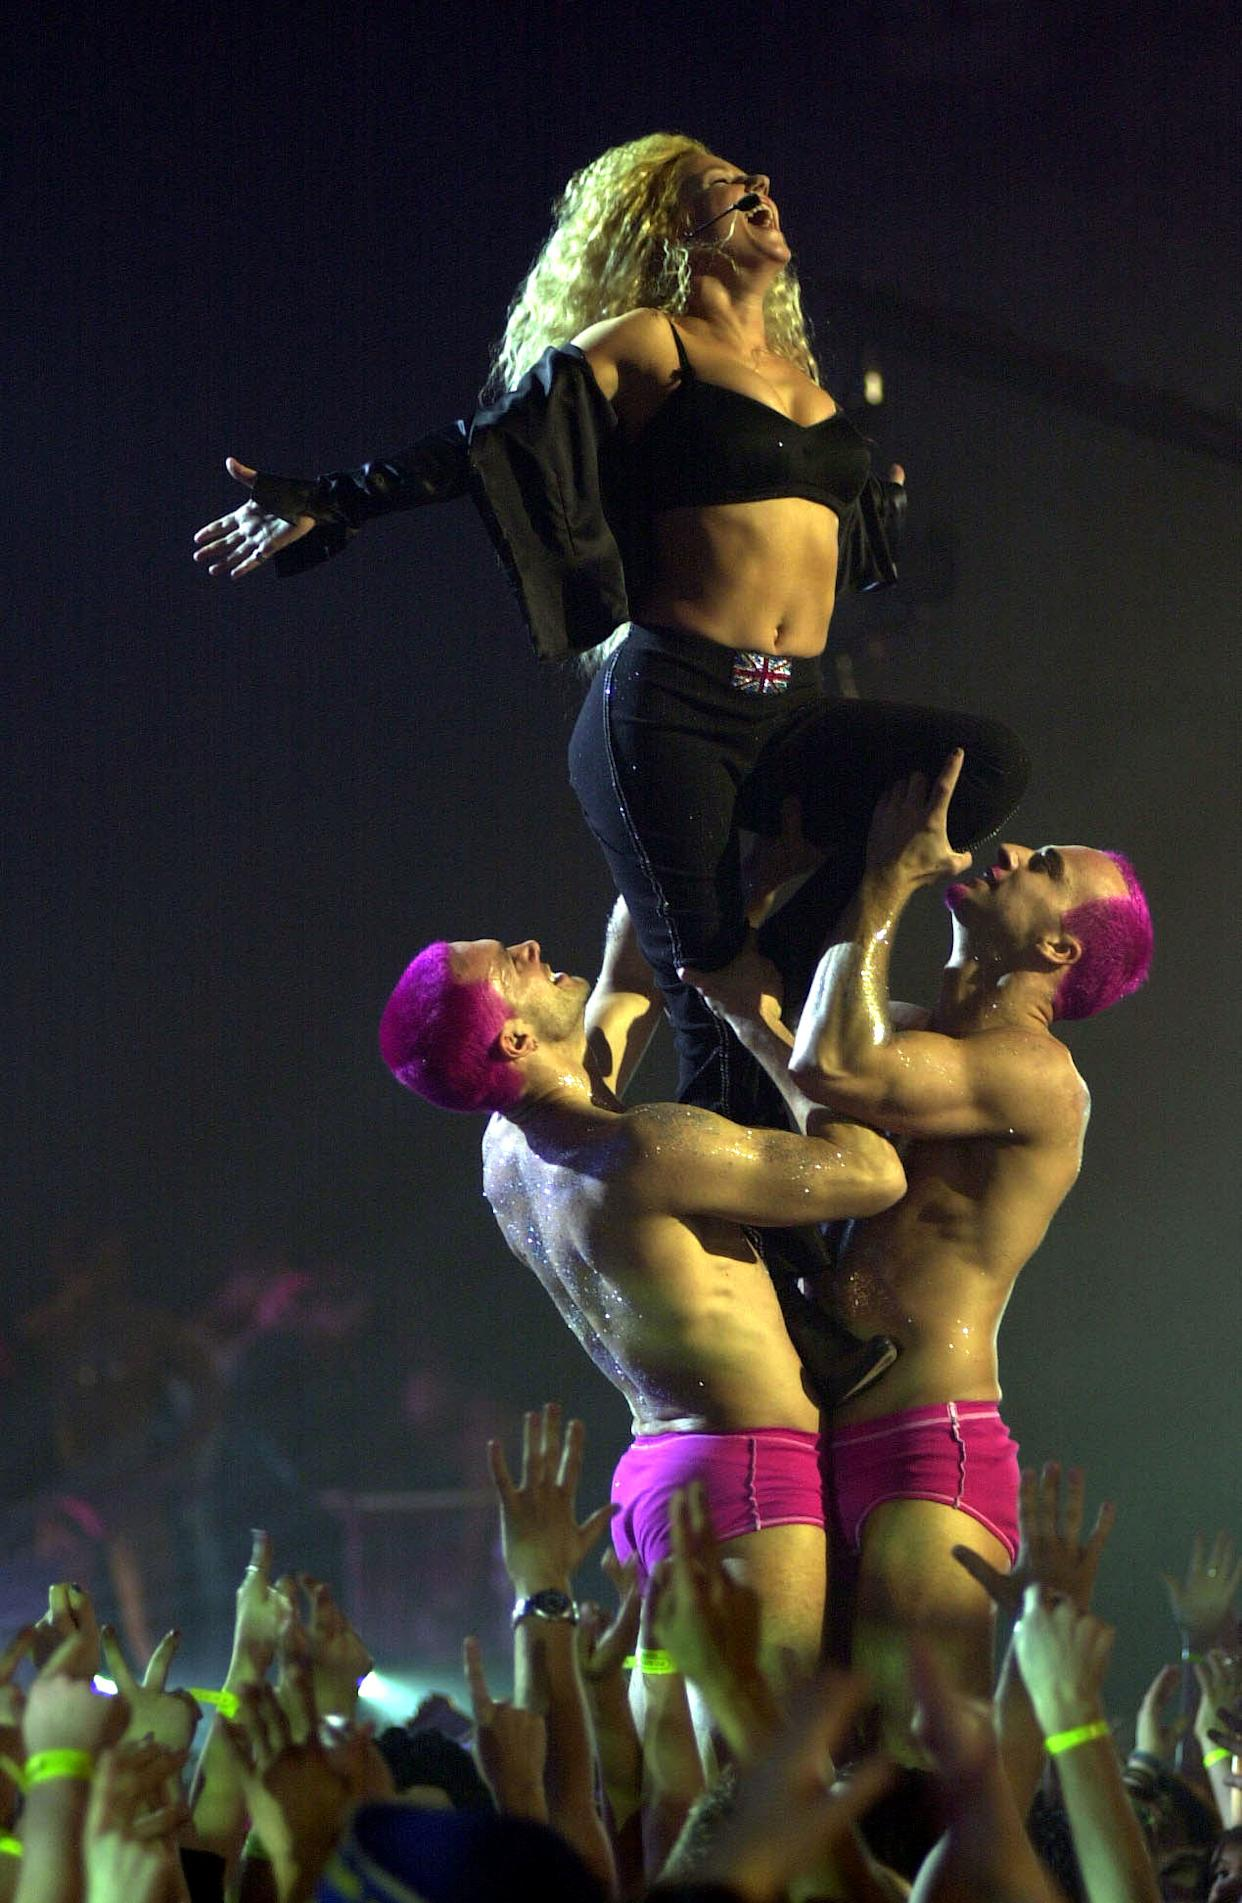 Ex-Spice Girl Geri Halliwell performing on stage during the Brit Awards 2000 ceremony, held at Earls Court in west London.